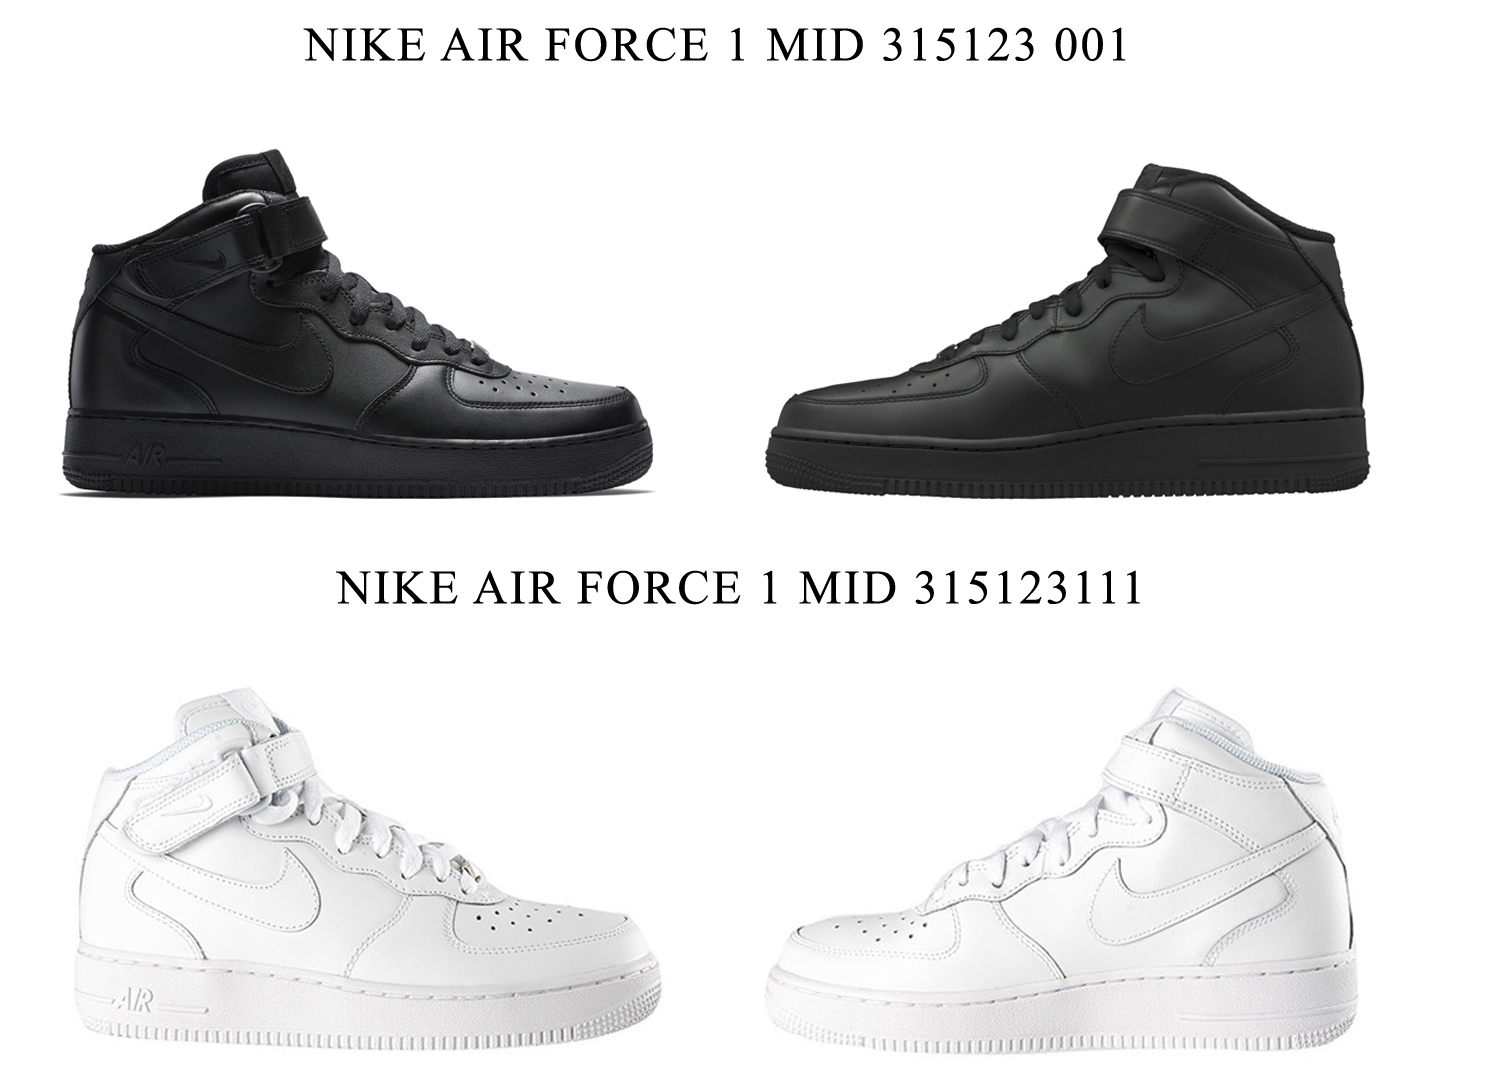 new arrival 0df16 5ee5d NIKE AIR FORCE 1 MID 315123 001 315123 111